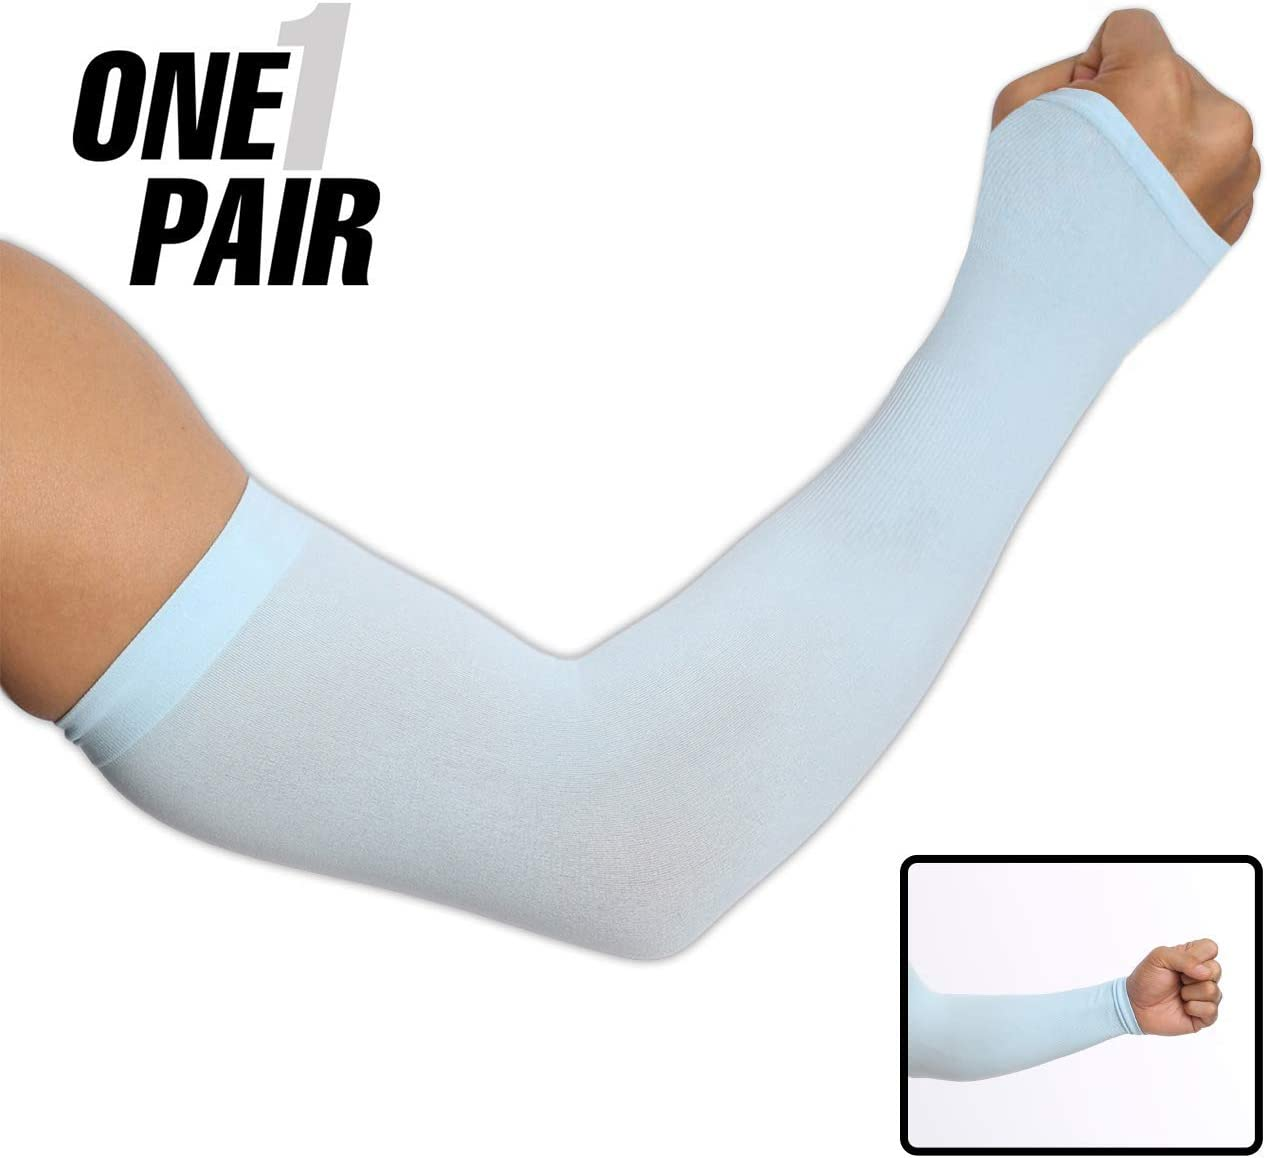 10PCS//5 pairs Sports Cooling Arm Sleeves Cover UV Sun Protection Basketball